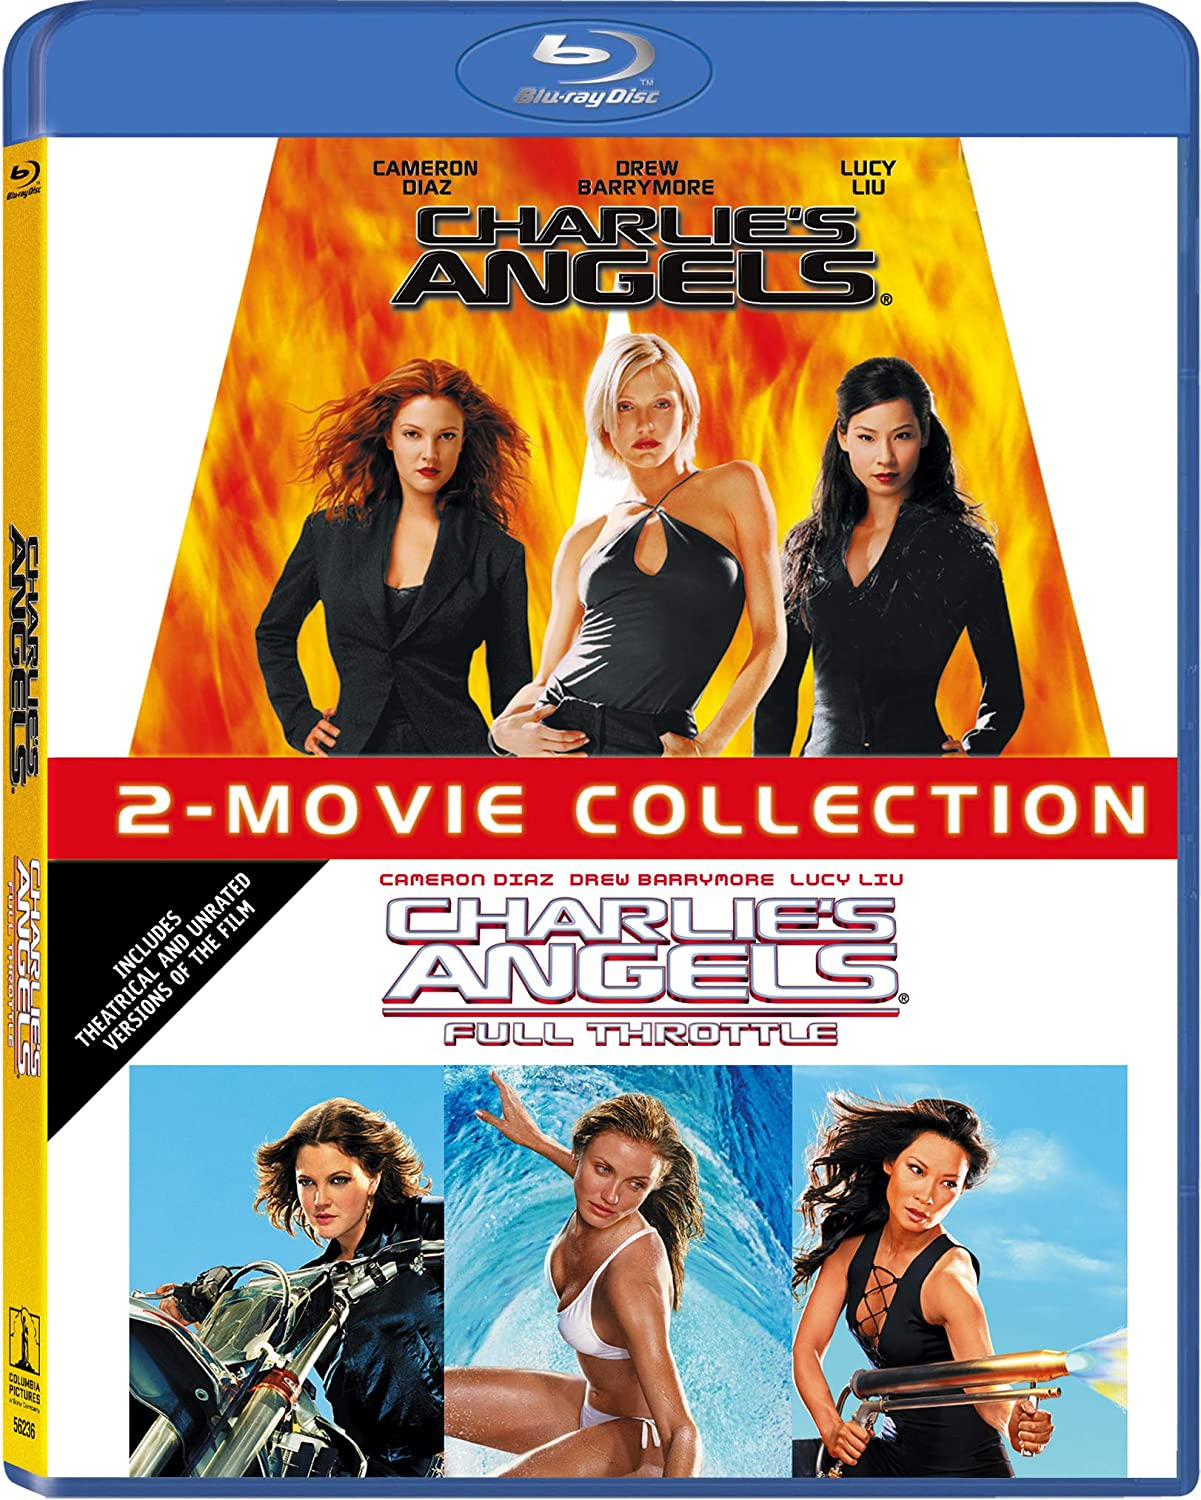 The Entertainment Factor New On Blu Ray Charlie S Angels 2000 And Charlie S Angels Full Throttle 2003 Double Feature